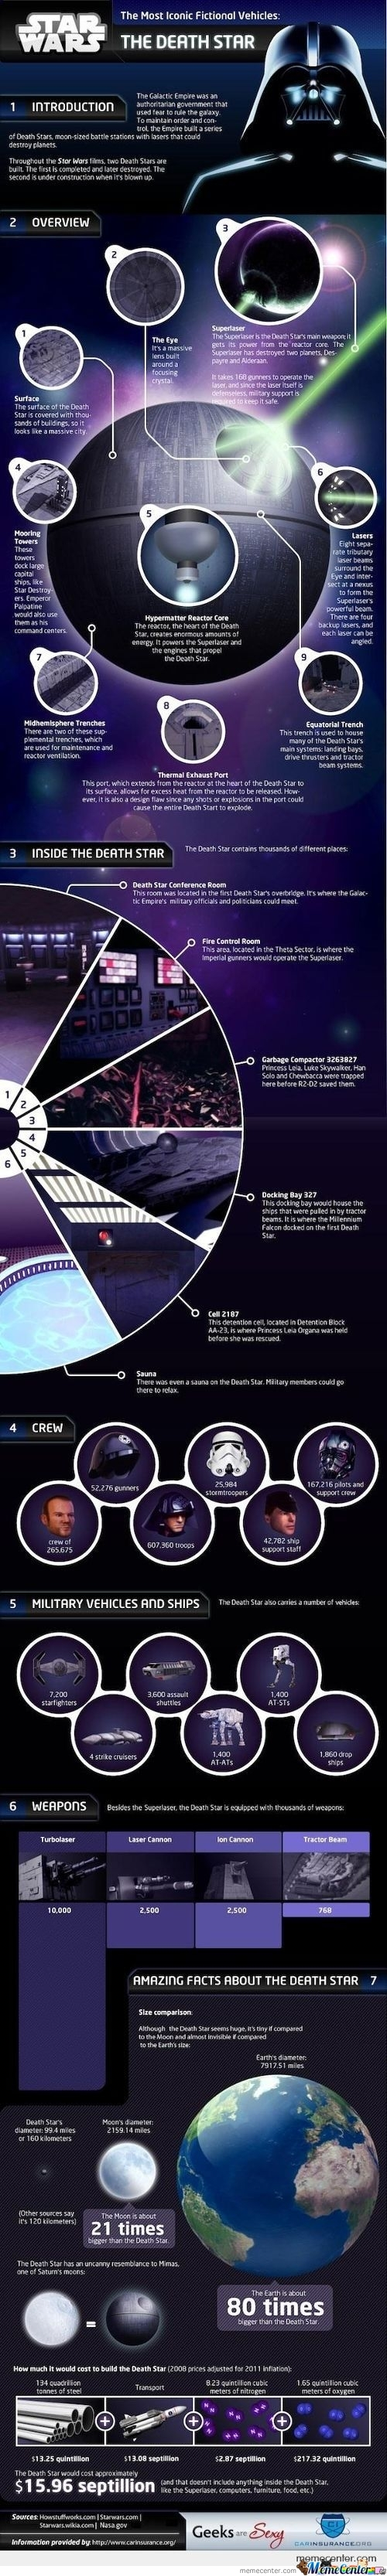 More About The Death Star